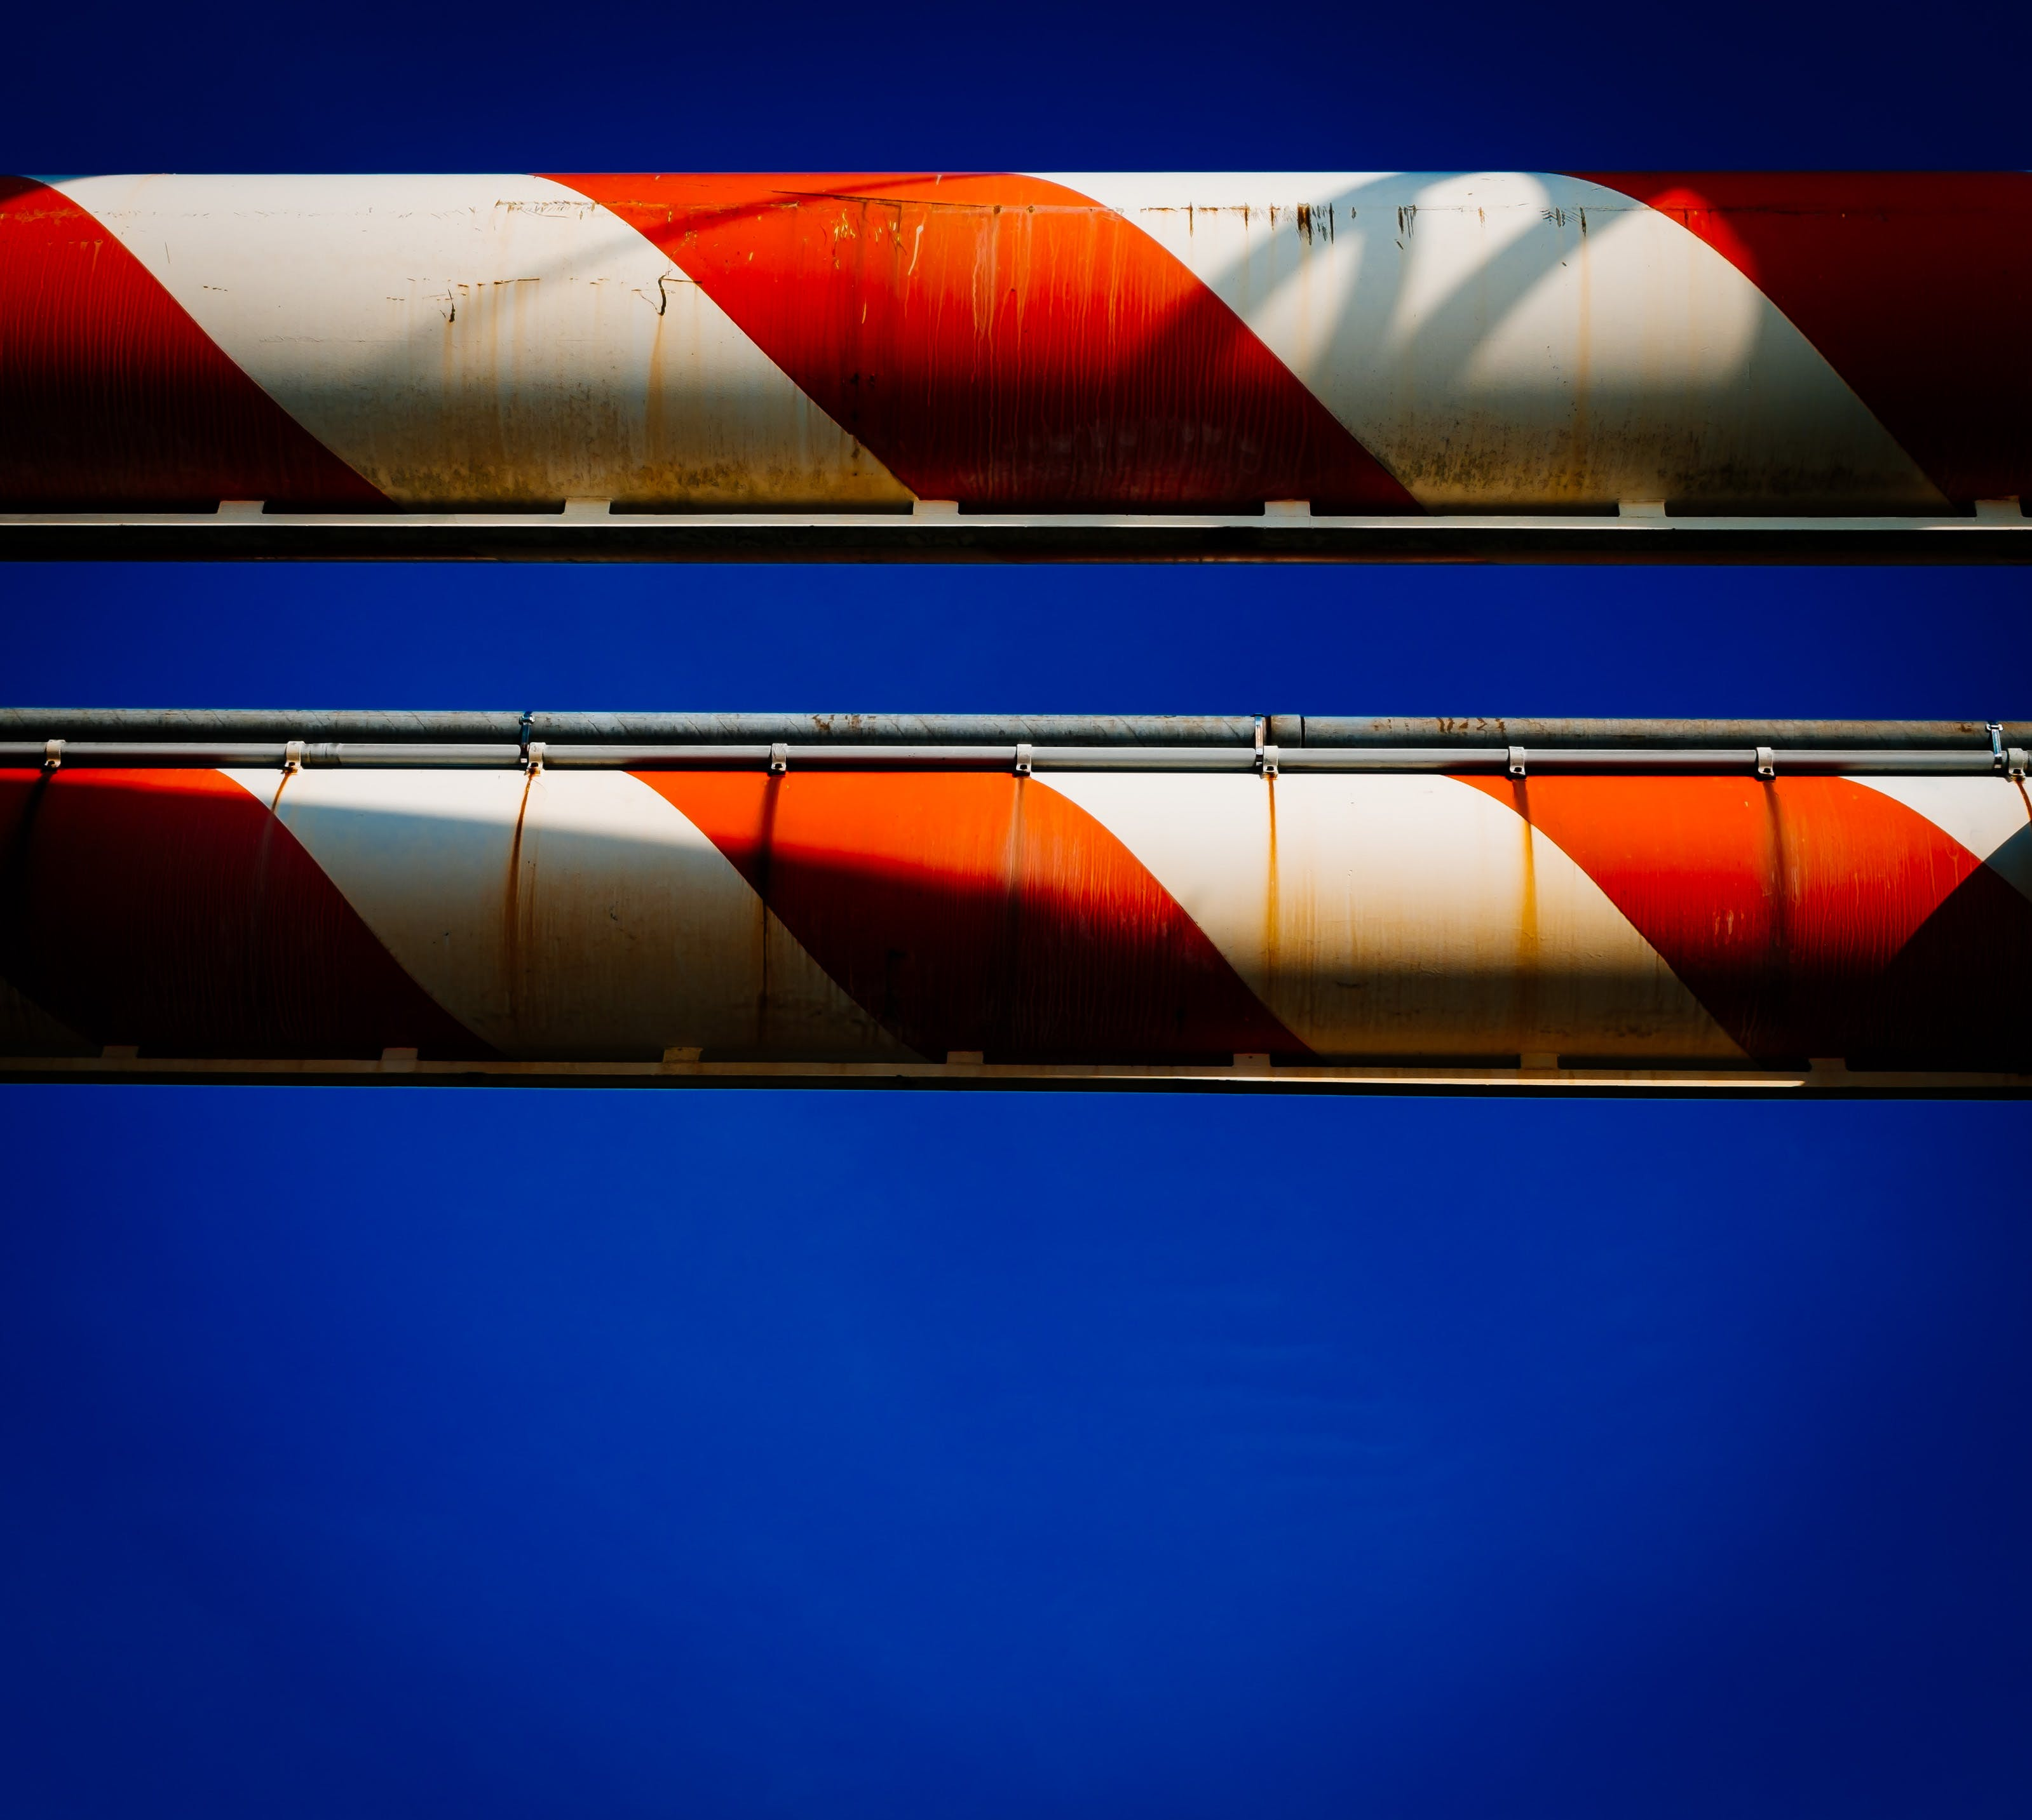 Free stock photo of pipes